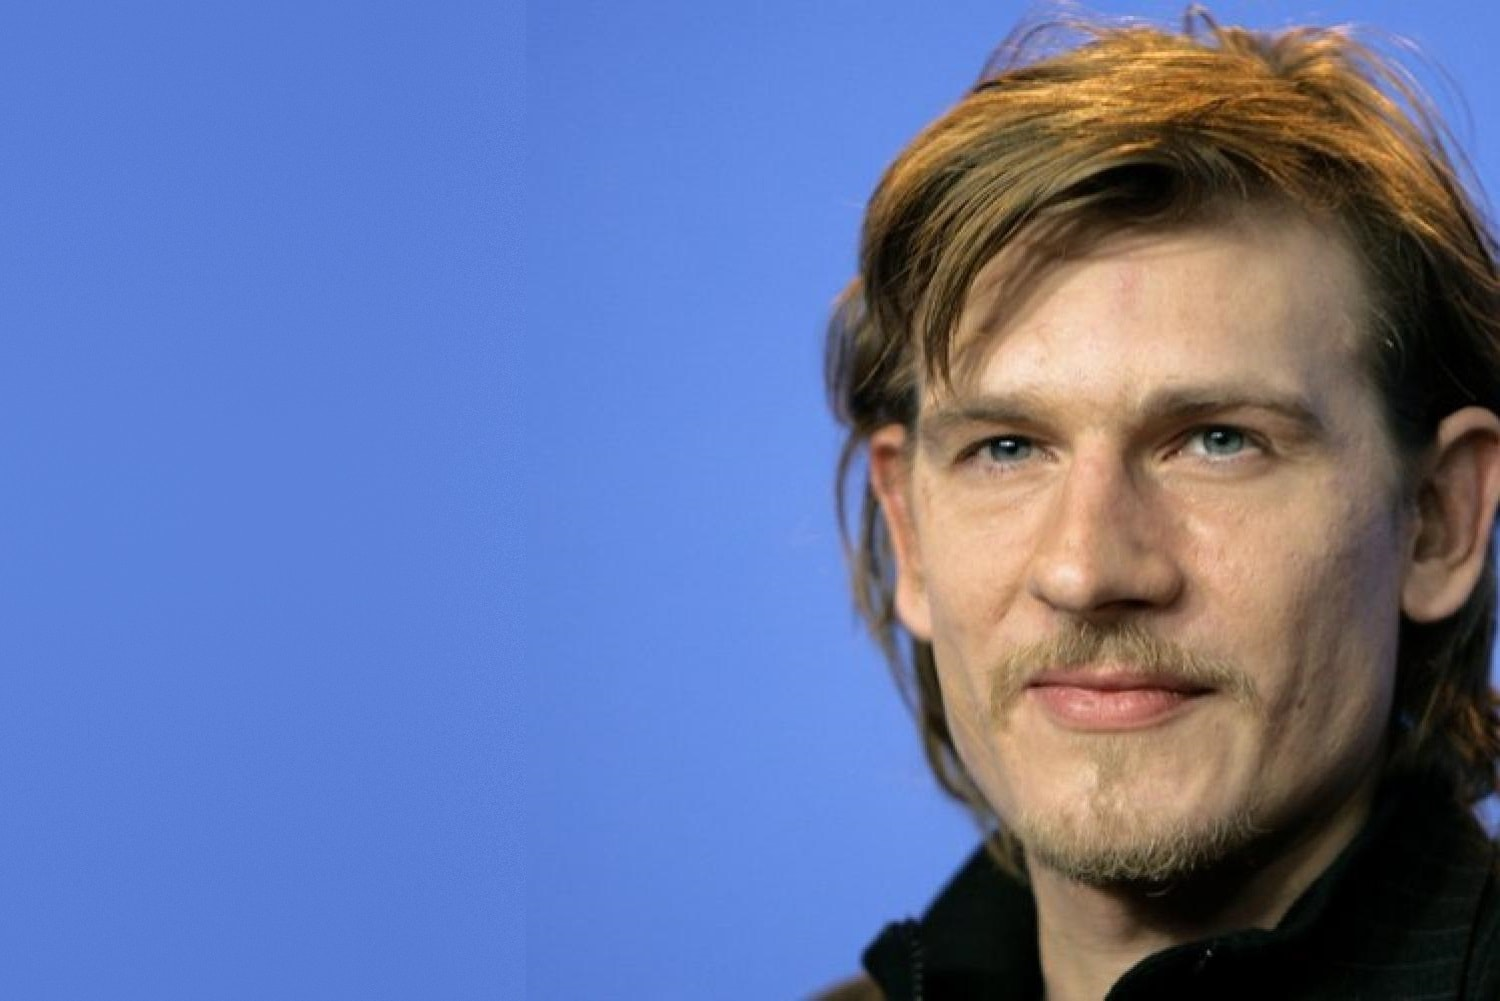 Guillaume Depardieu Background